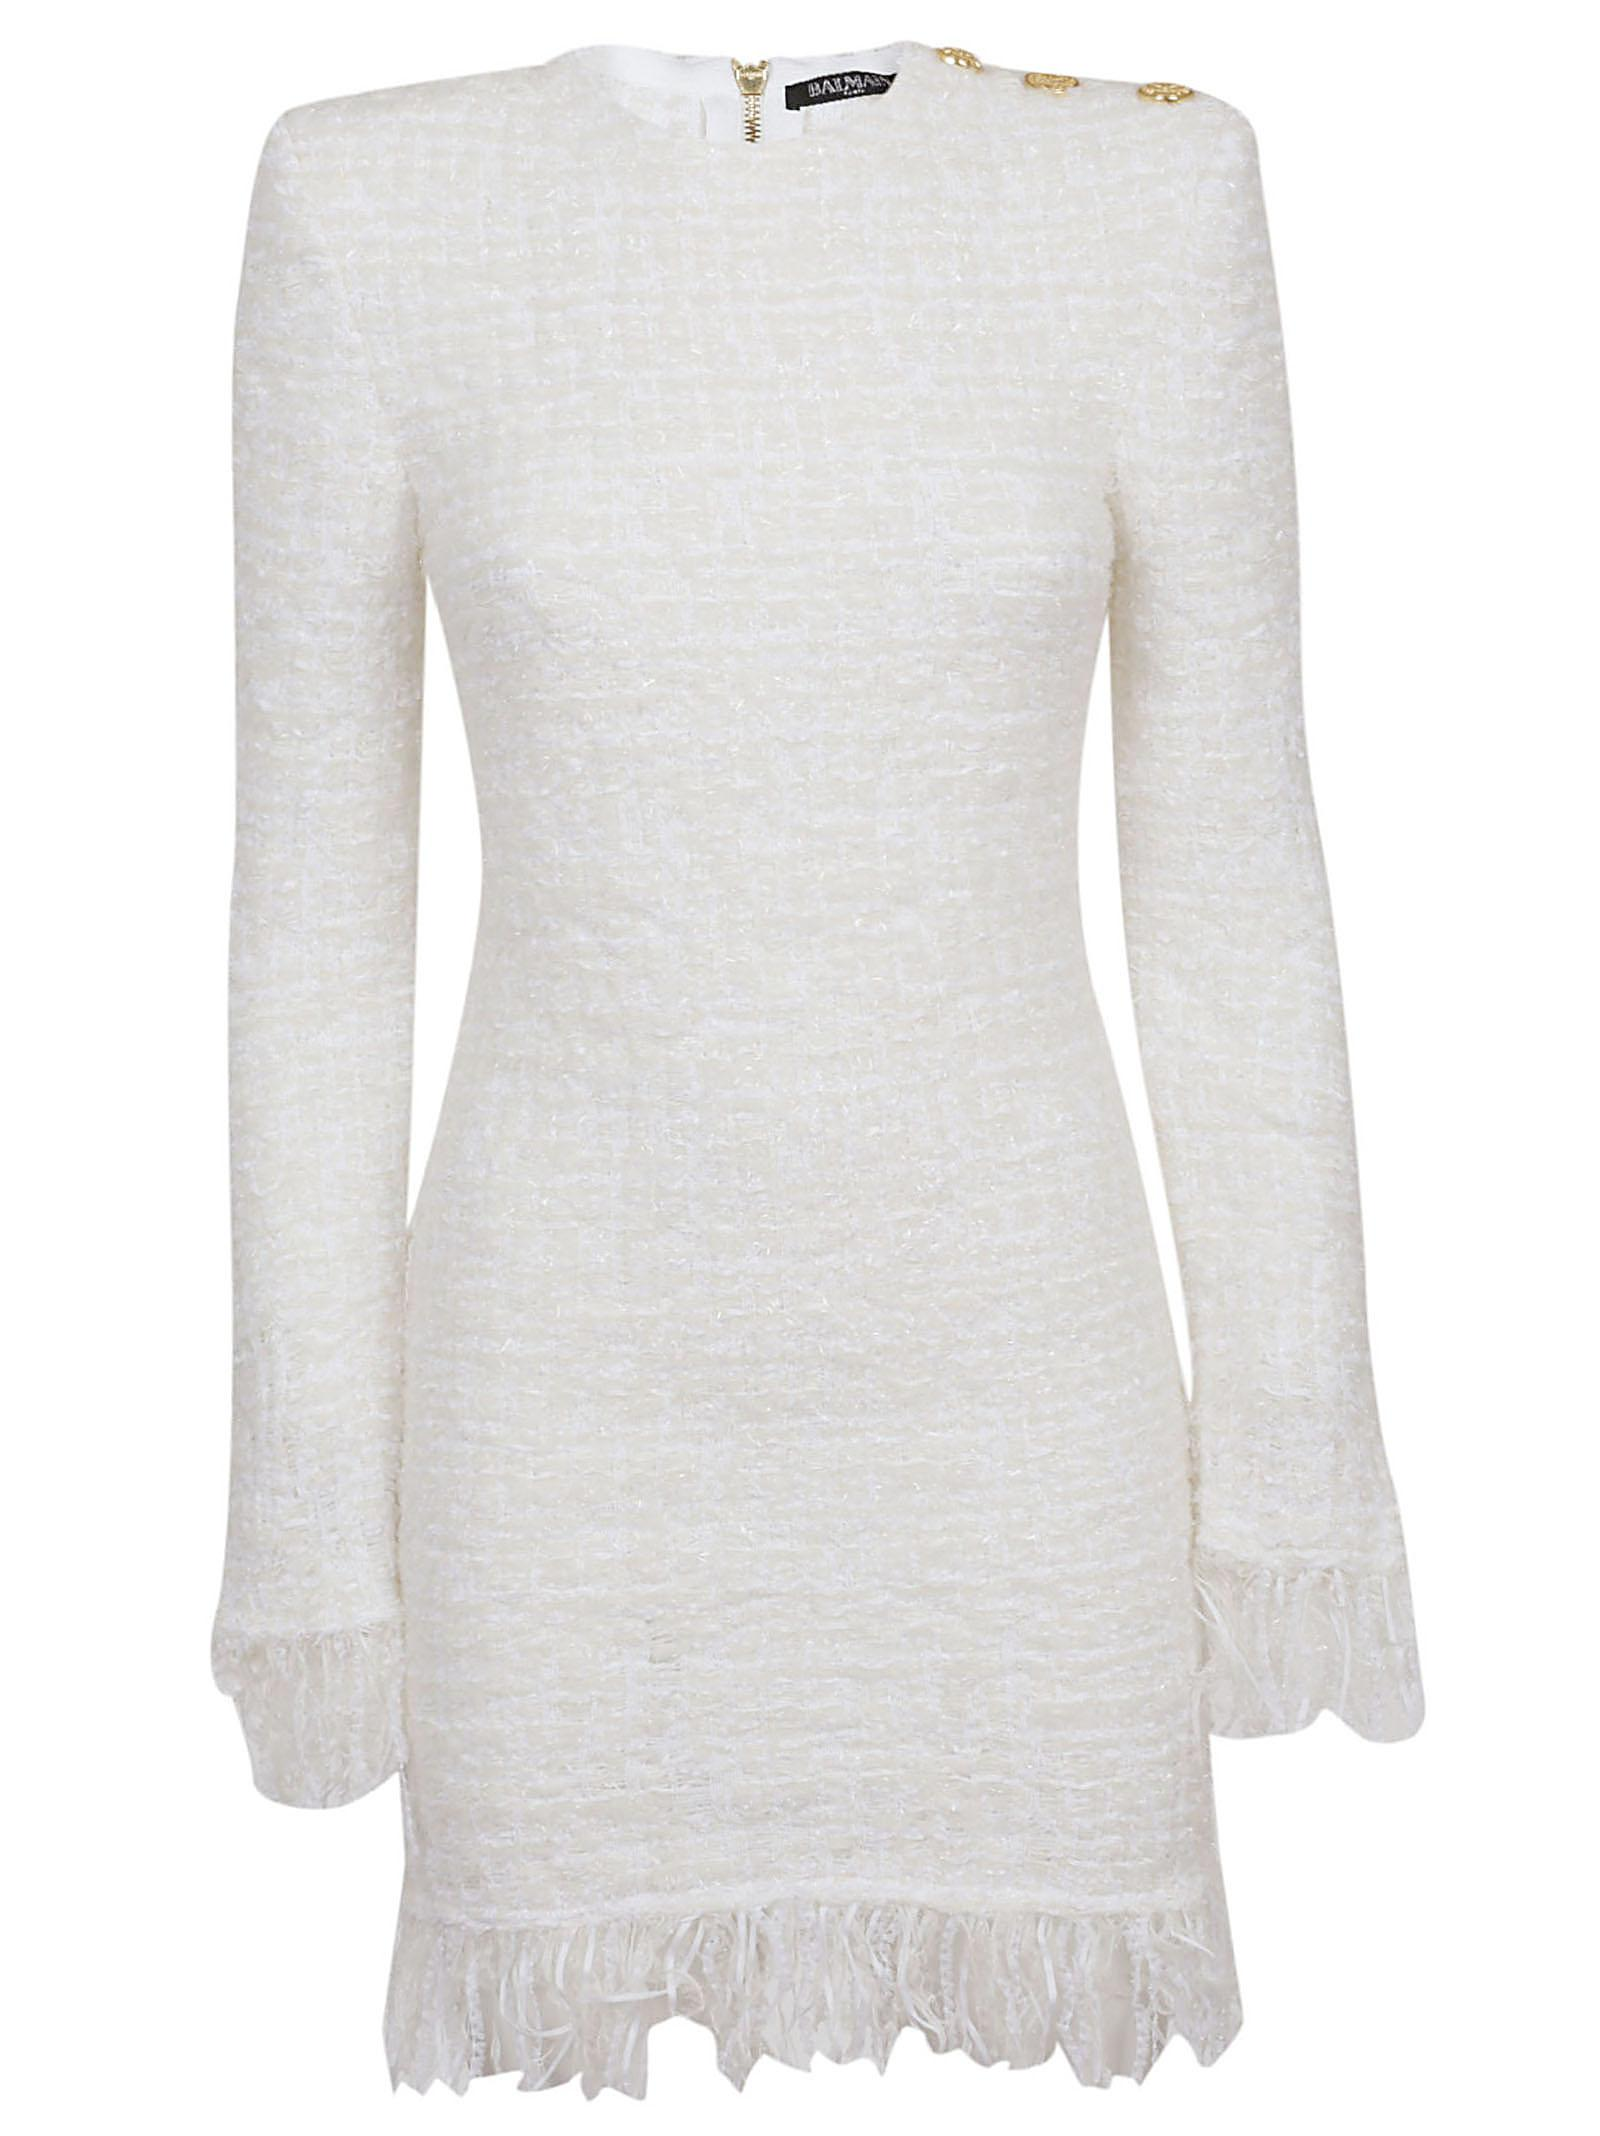 d0d3bd6f413 Lyst - Balmain Short Ls 3 Btn Fringed Tweed Dress in White